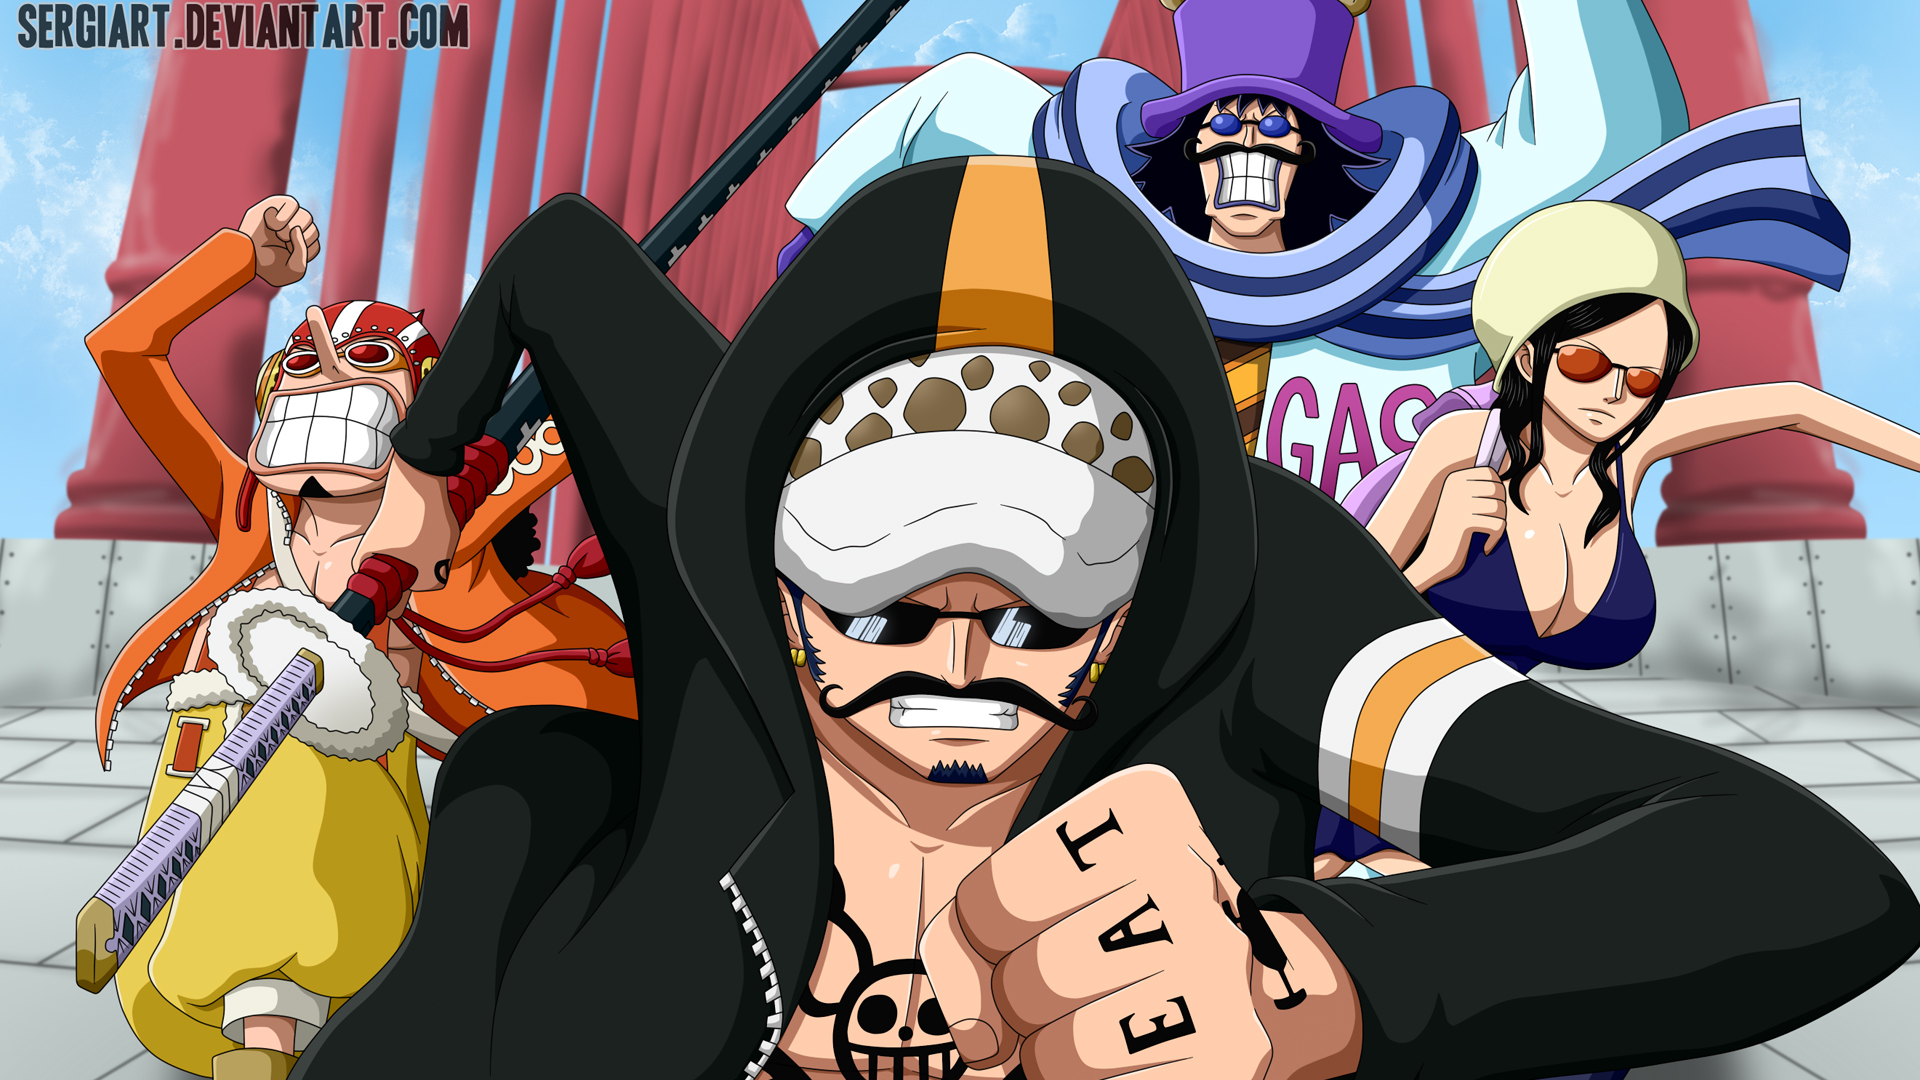 Free Download Law Usopp Nico Robin And Caesar Clown One Piece Anime Hd Wallpaper 1920x1080 For Your Desktop Mobile Tablet Explore 50 Nico Robin Iphone Wallpaper Nico Robin Iphone If you like this one piece wallpaper iphone hd collection. one piece anime hd wallpaper 1920x1080